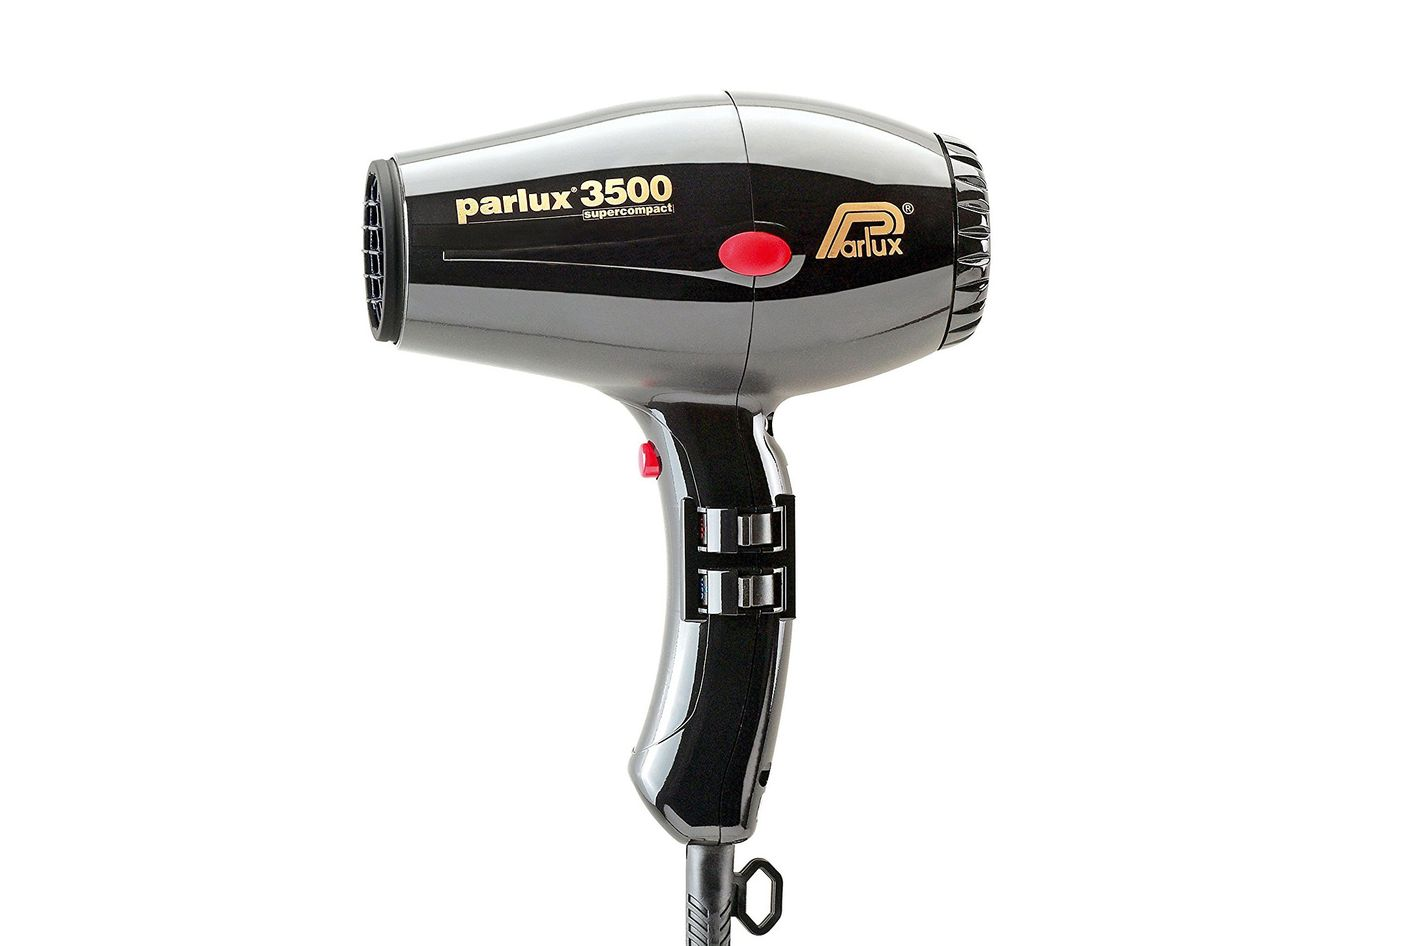 Best Travel Hair Dryer Parlux 3500 Super Compact Professional At Amazon